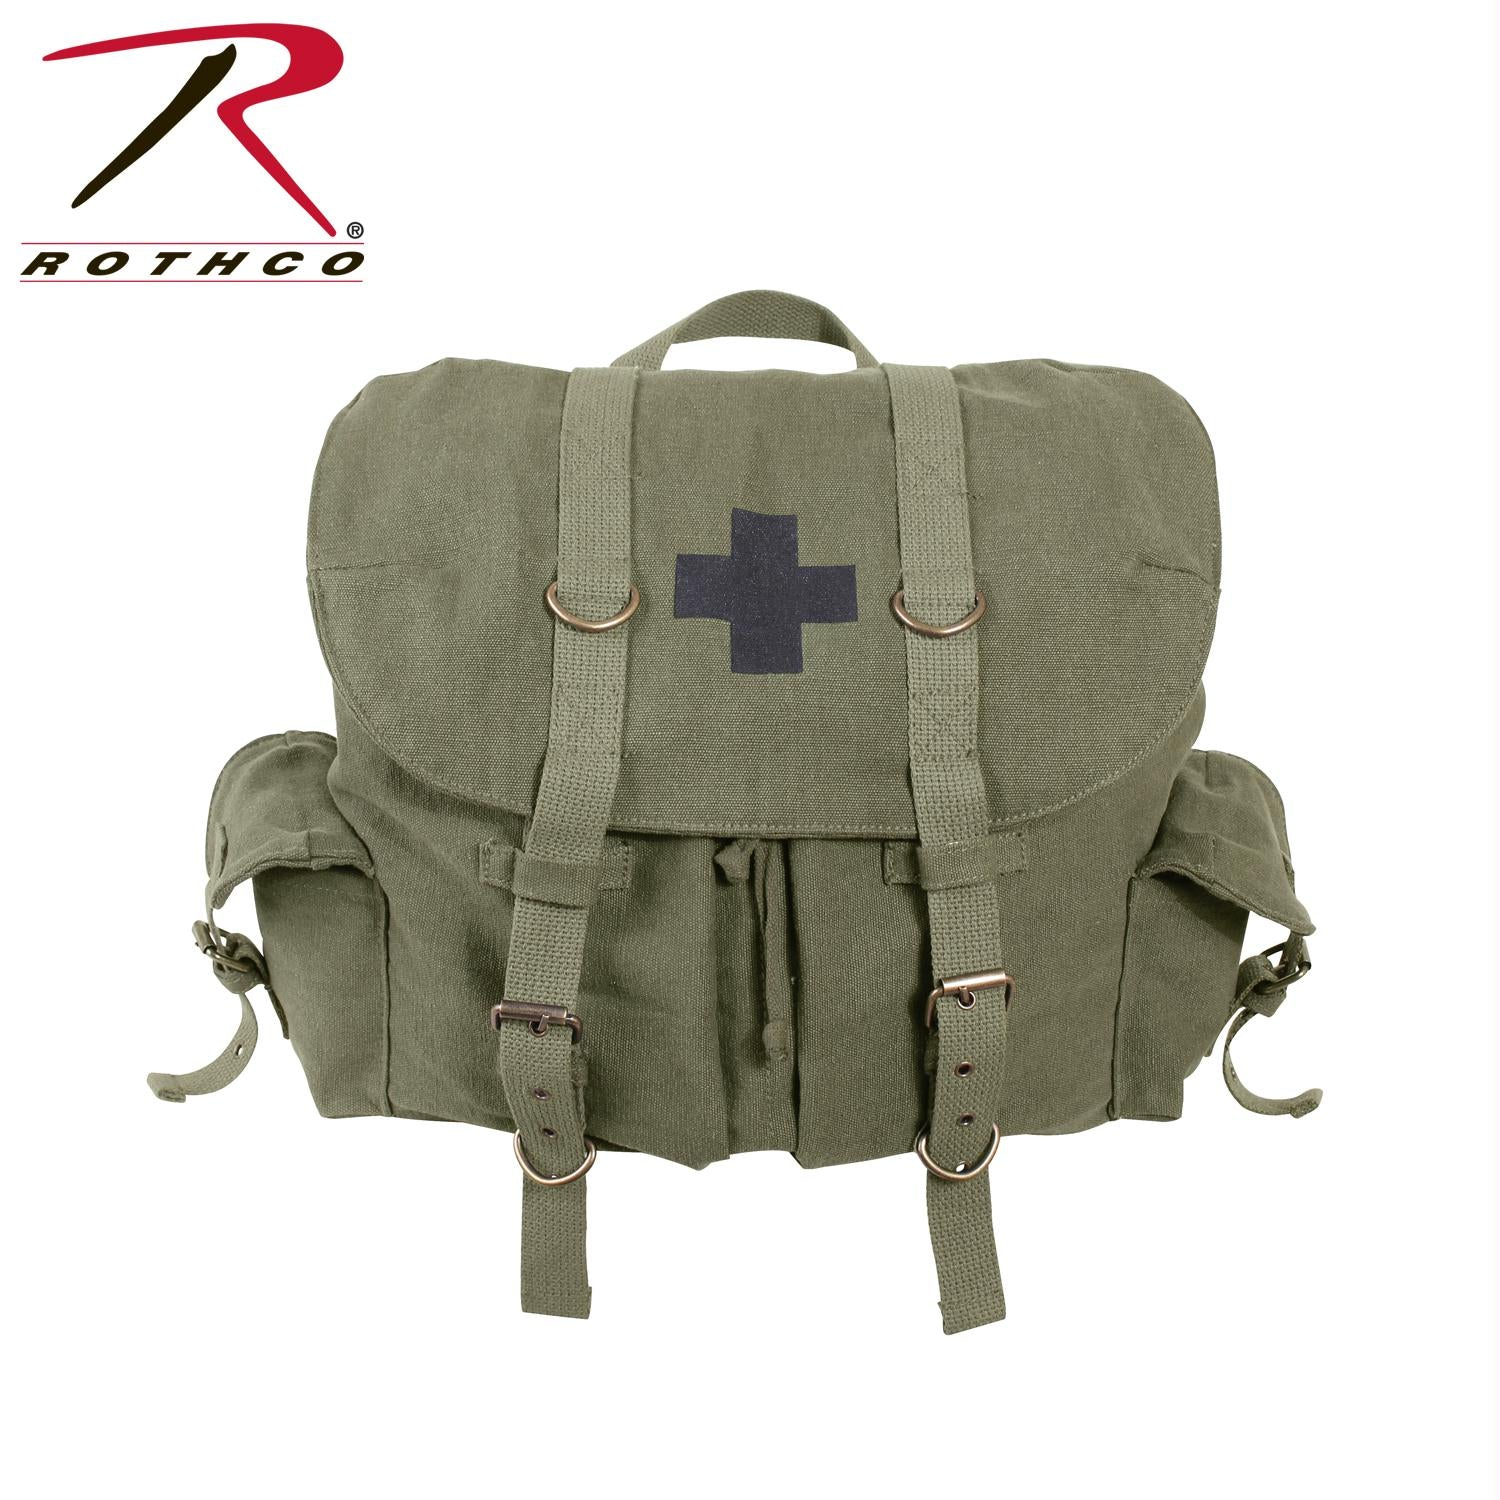 Rothco Compact Weekender Backpack With Cross - Olive Drab w/ Black Cross